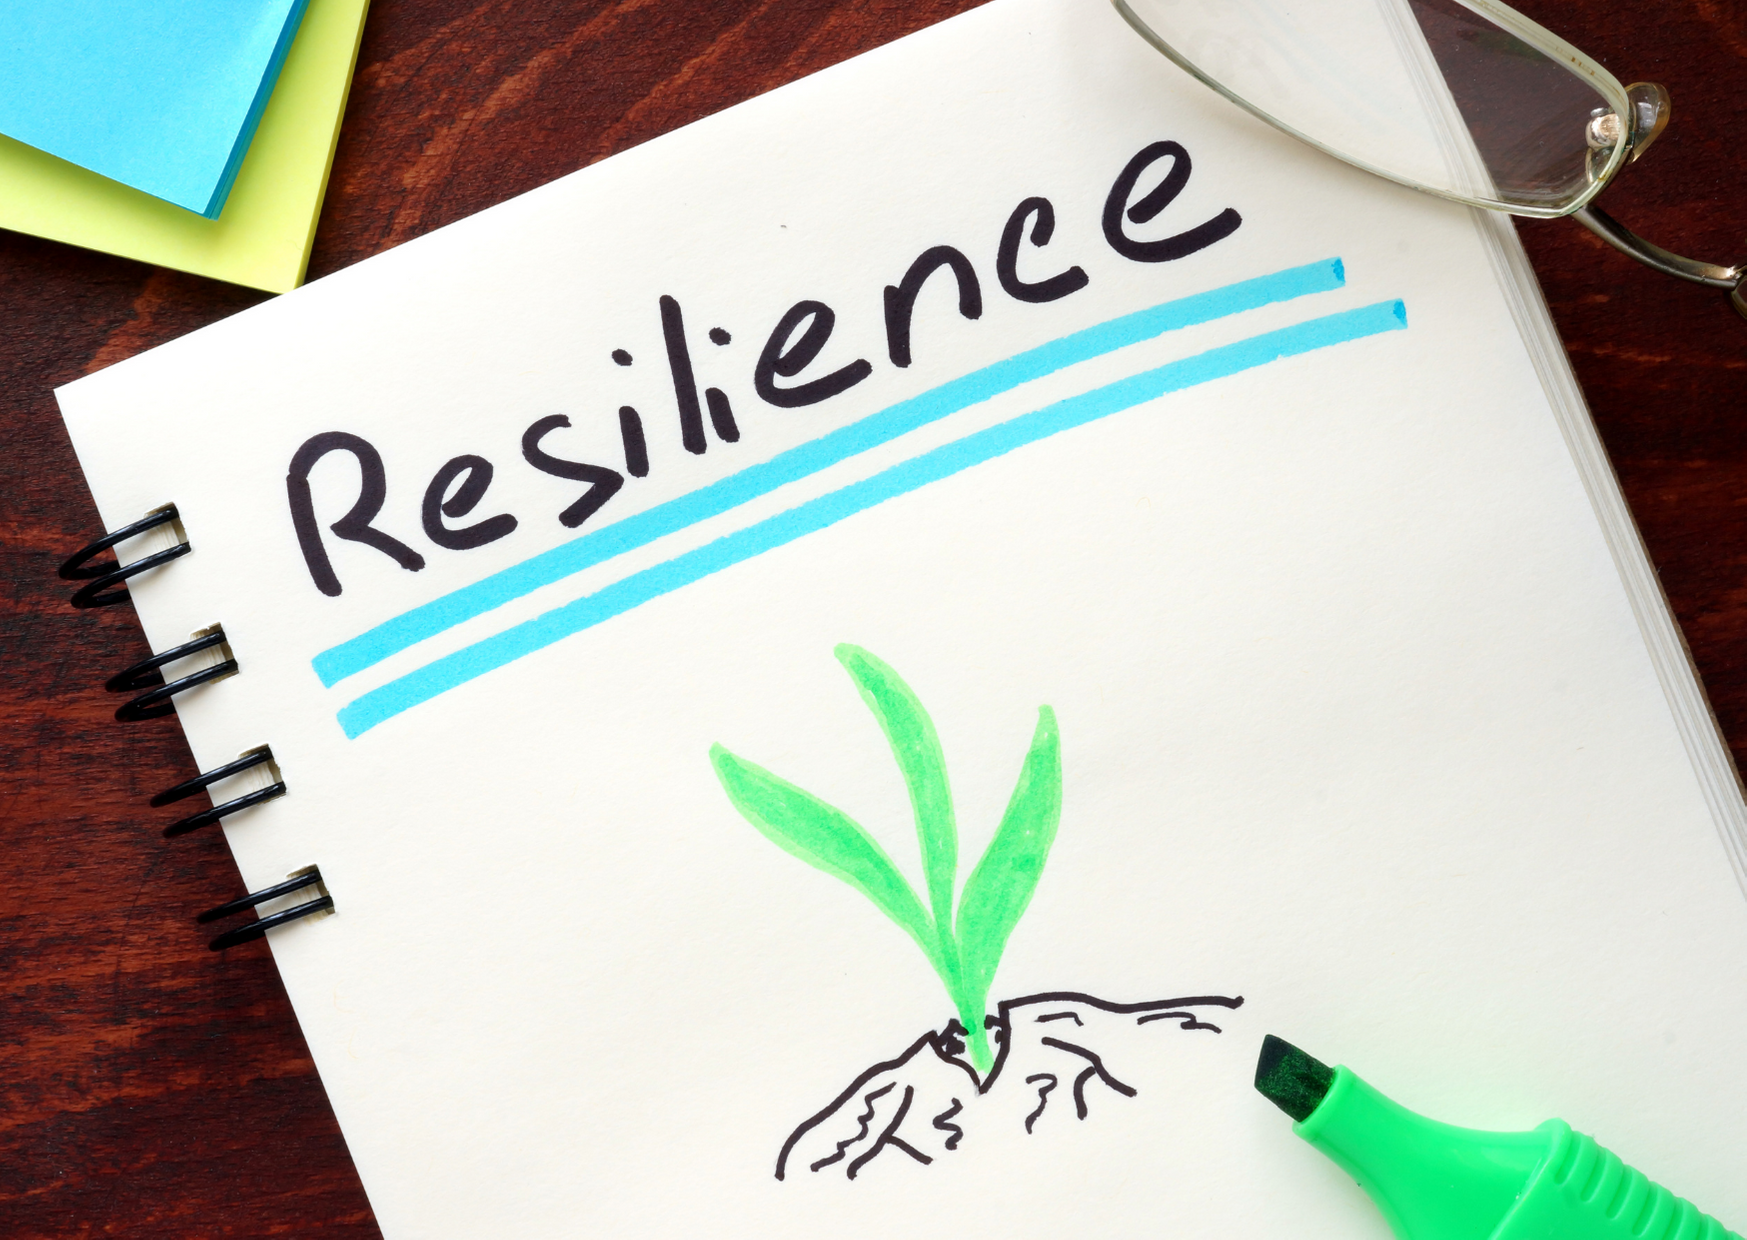 Resilience Reboot Workshop (27 January 2021)